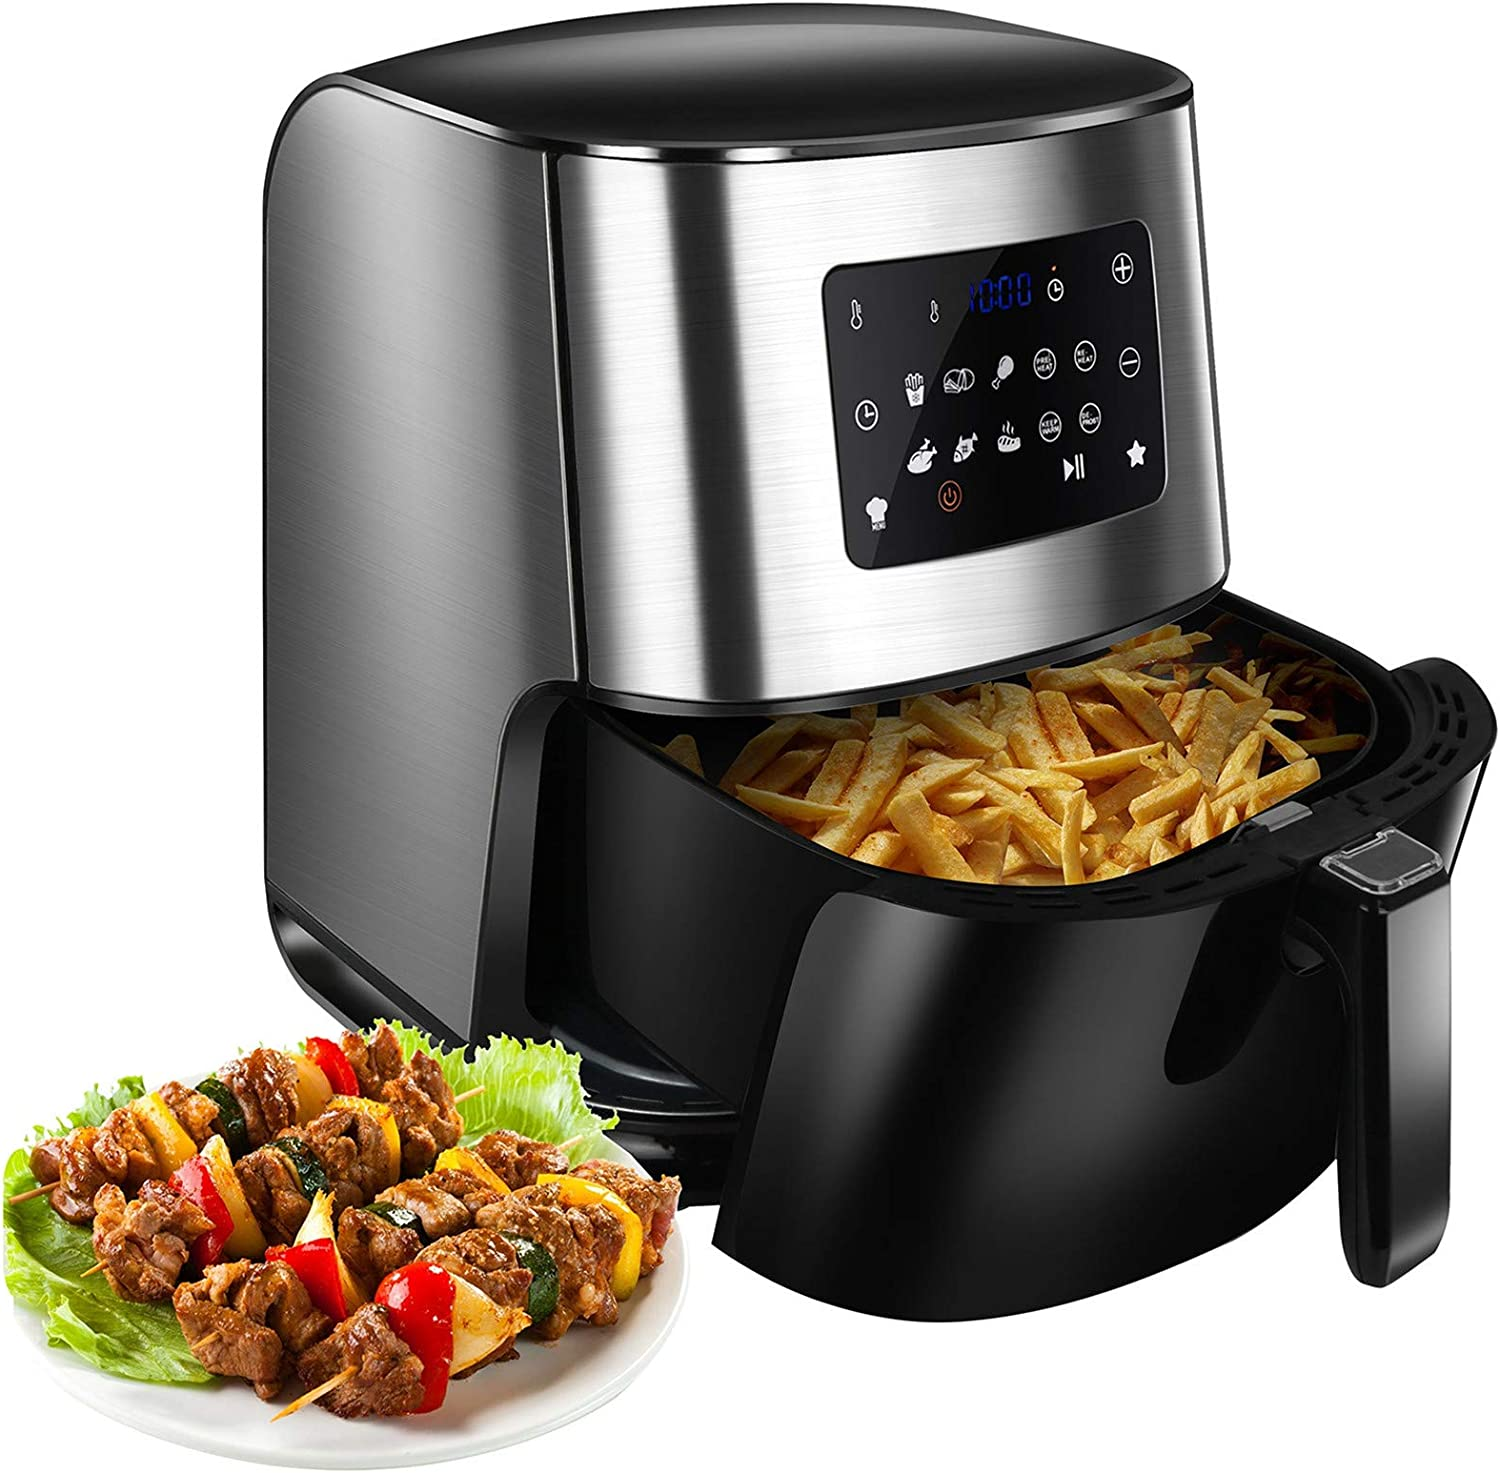 HTNBO Air Fryer, 1700W 6.3 Qt Electric Hot Oven Oilless Cooker LED Digital Touchscreen for Roasting/Baking/Grilling/Dehydrating, 8 Presets, Timer & Auto Shut Off, Dishwasher-Safe, Recipe Book